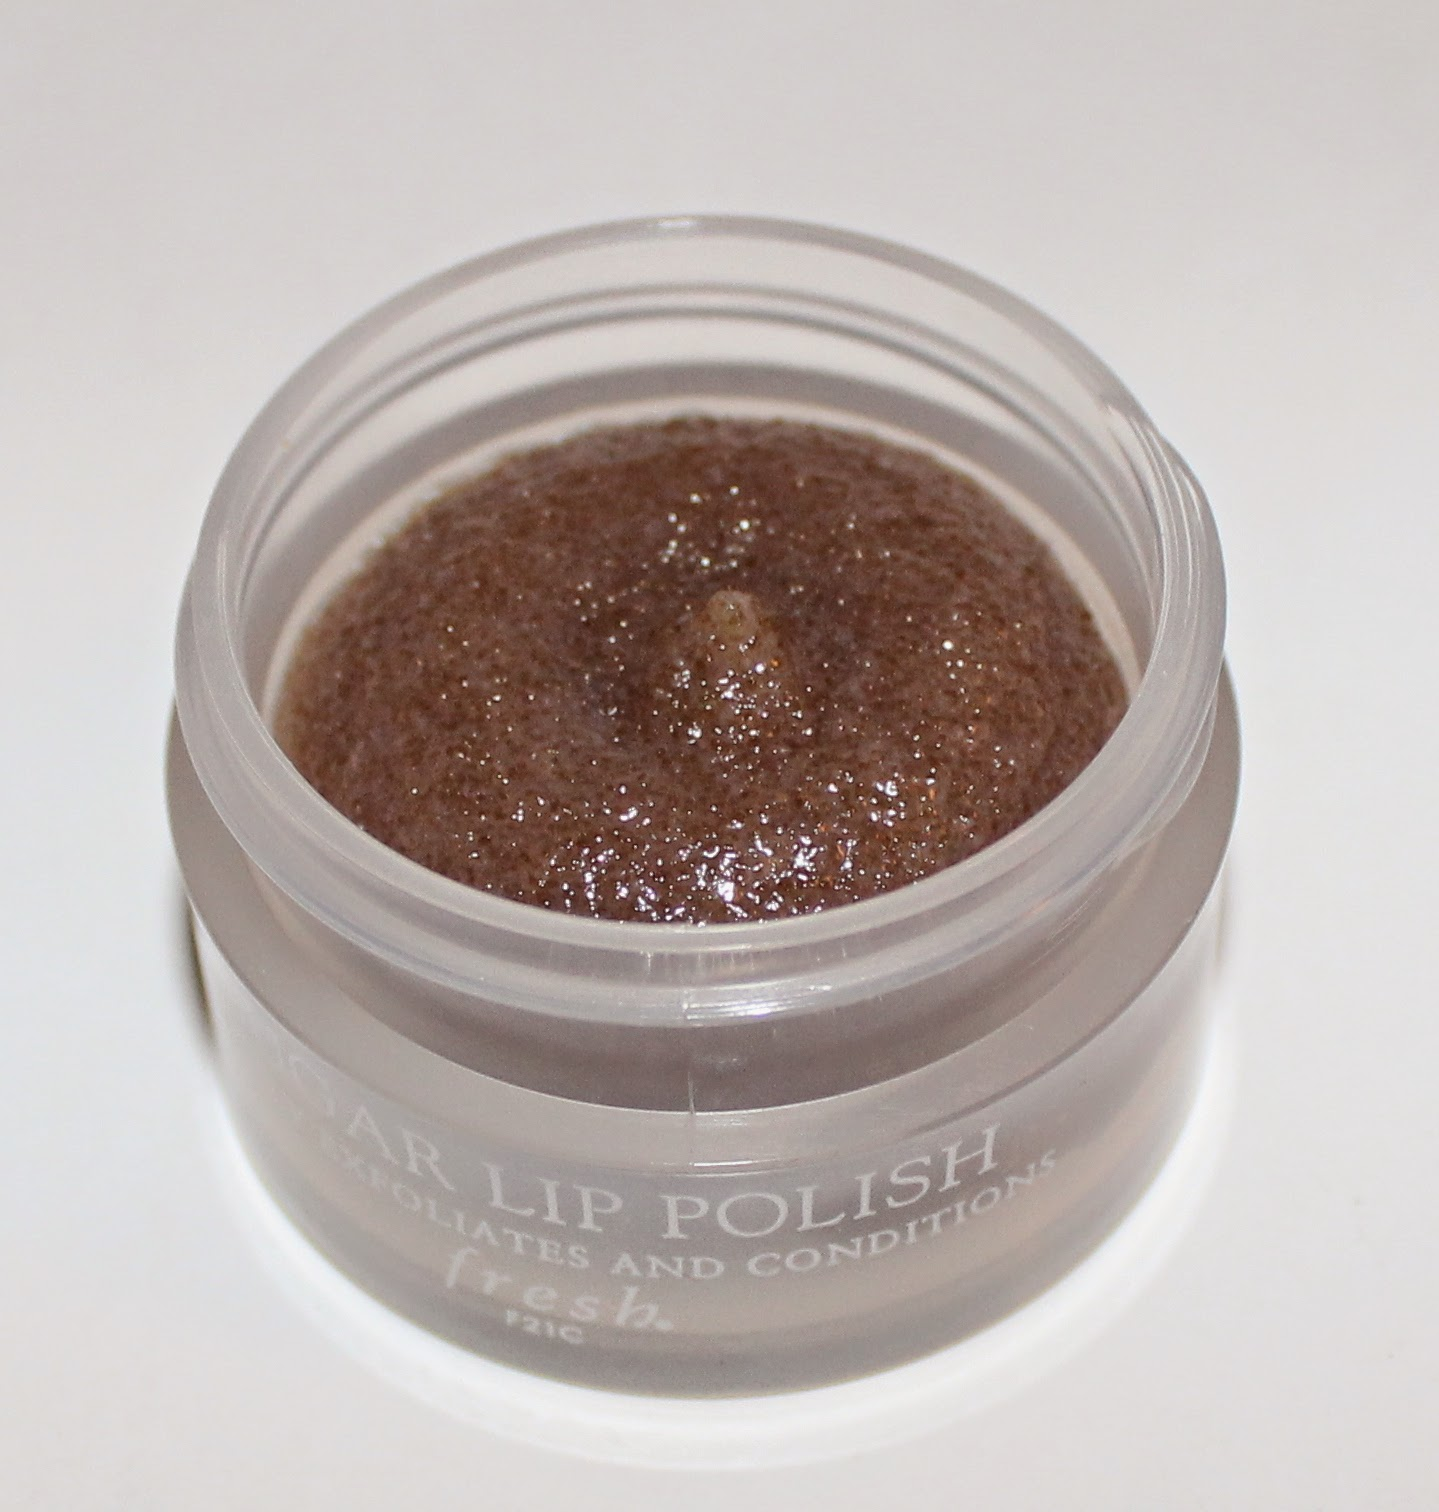 Fresh Sugar Lip Polish